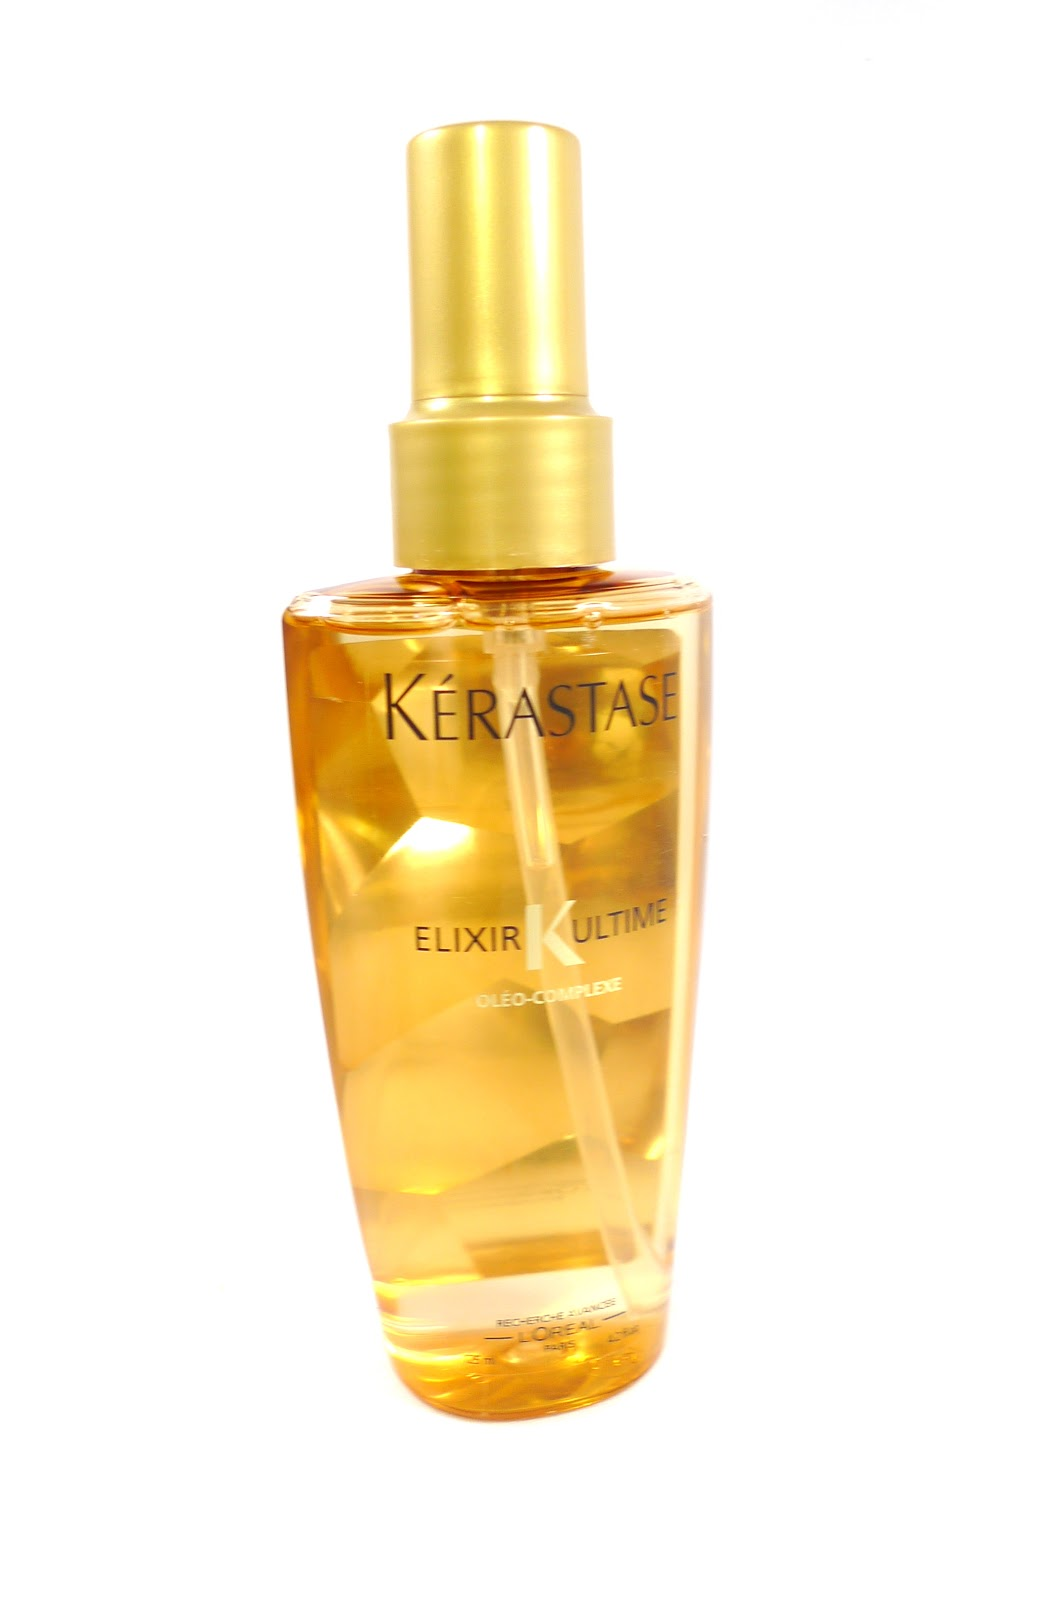 review kerastase elixir ultime the beauty junkee. Black Bedroom Furniture Sets. Home Design Ideas